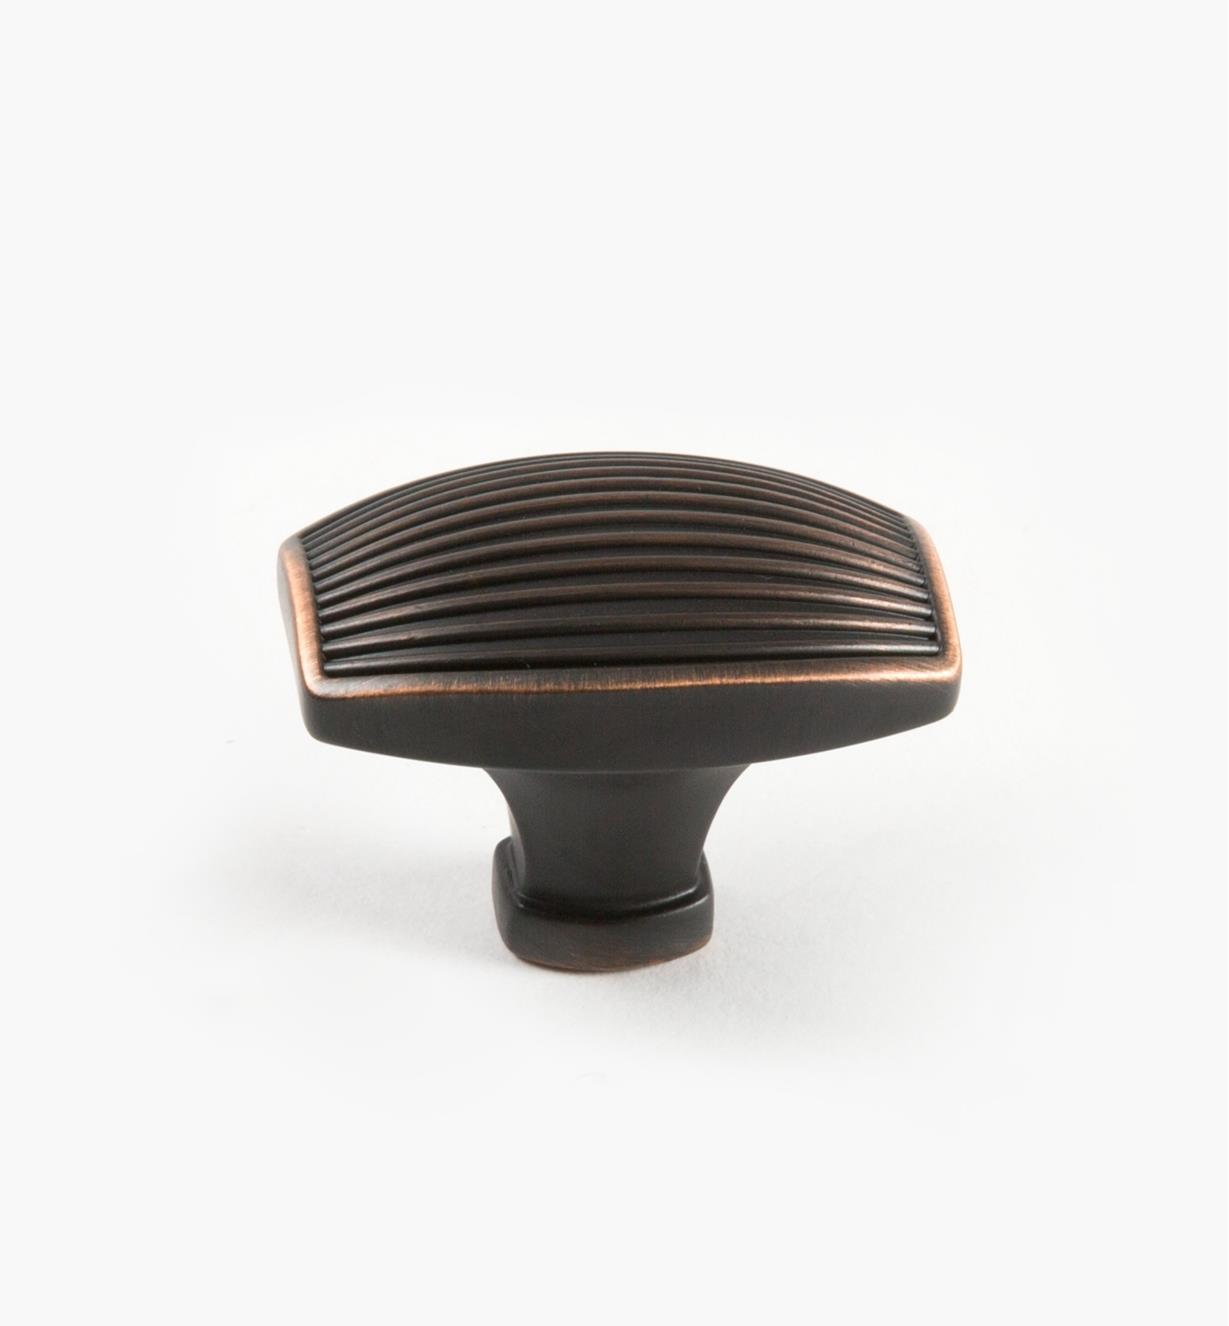 "02A1524 - Seagrass Oil-Rubbed Bronze 1 3/4"" Lg. Knob, each"